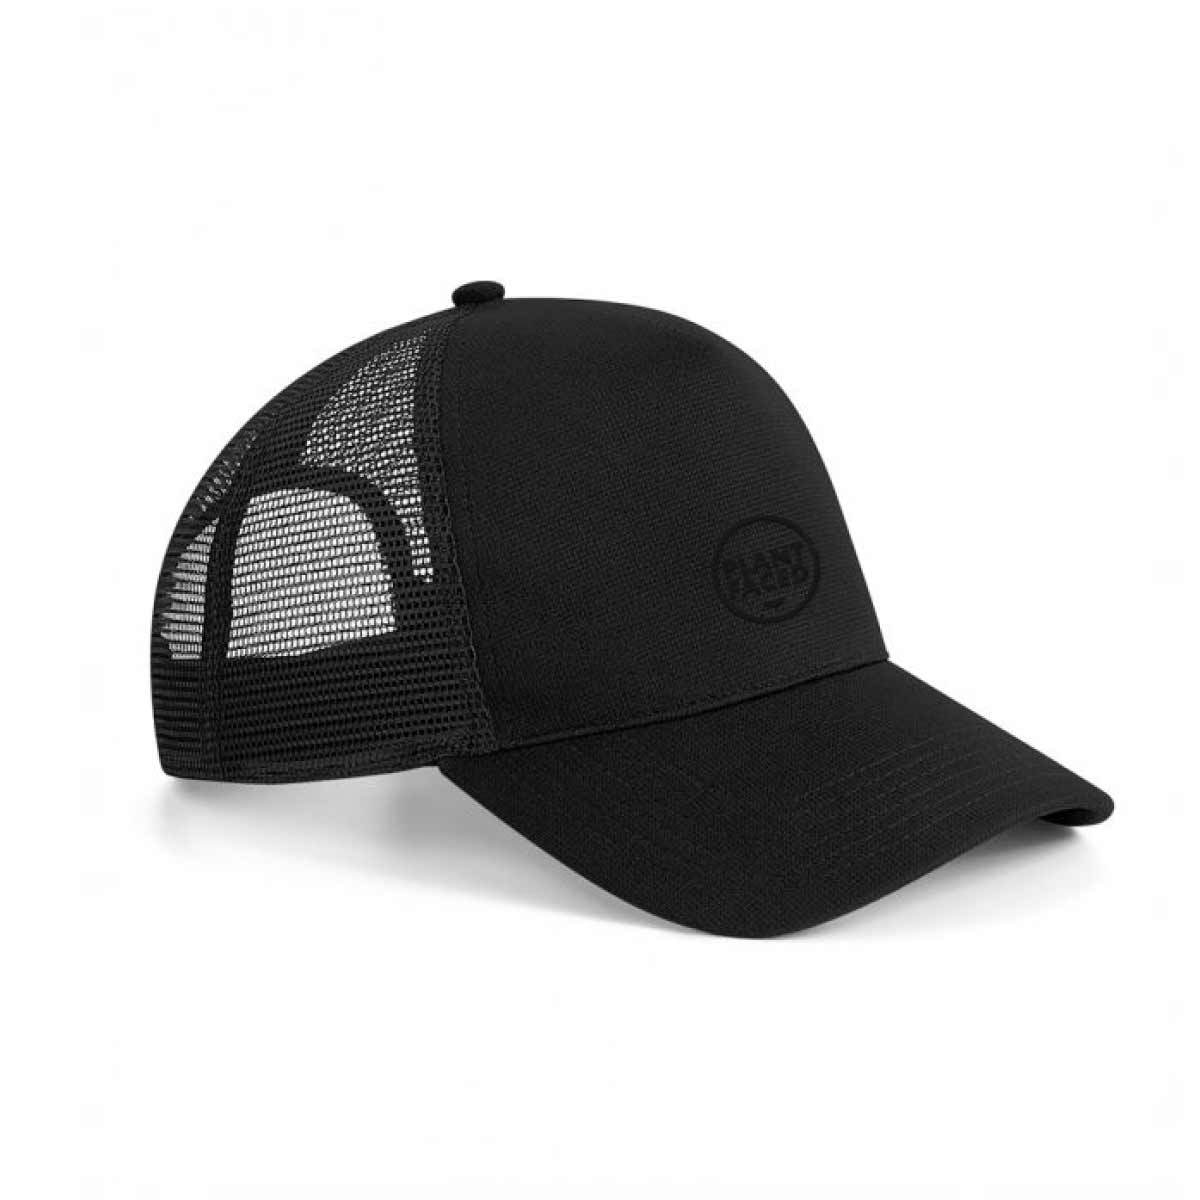 Plant Faced Trucker Cap - Black Out - ORGANIC